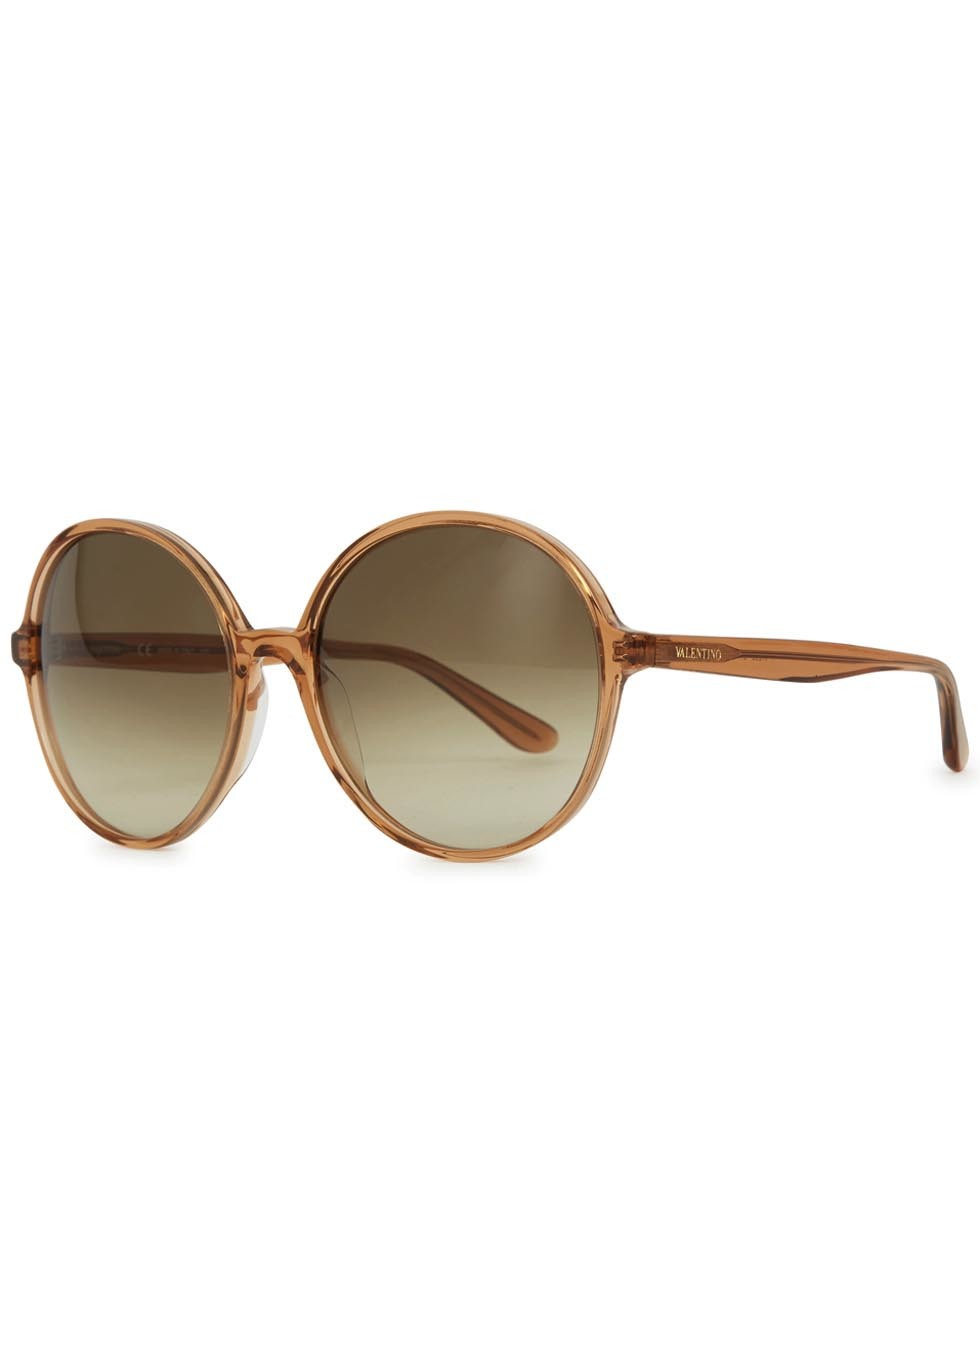 Light Brown Oversized Round Frame Sunglasses - predominant colour: stone; occasions: casual, holiday, creative work; style: round; size: large; material: plastic/rubber; pattern: plain; finish: plain; season: a/w 2015; wardrobe: basic